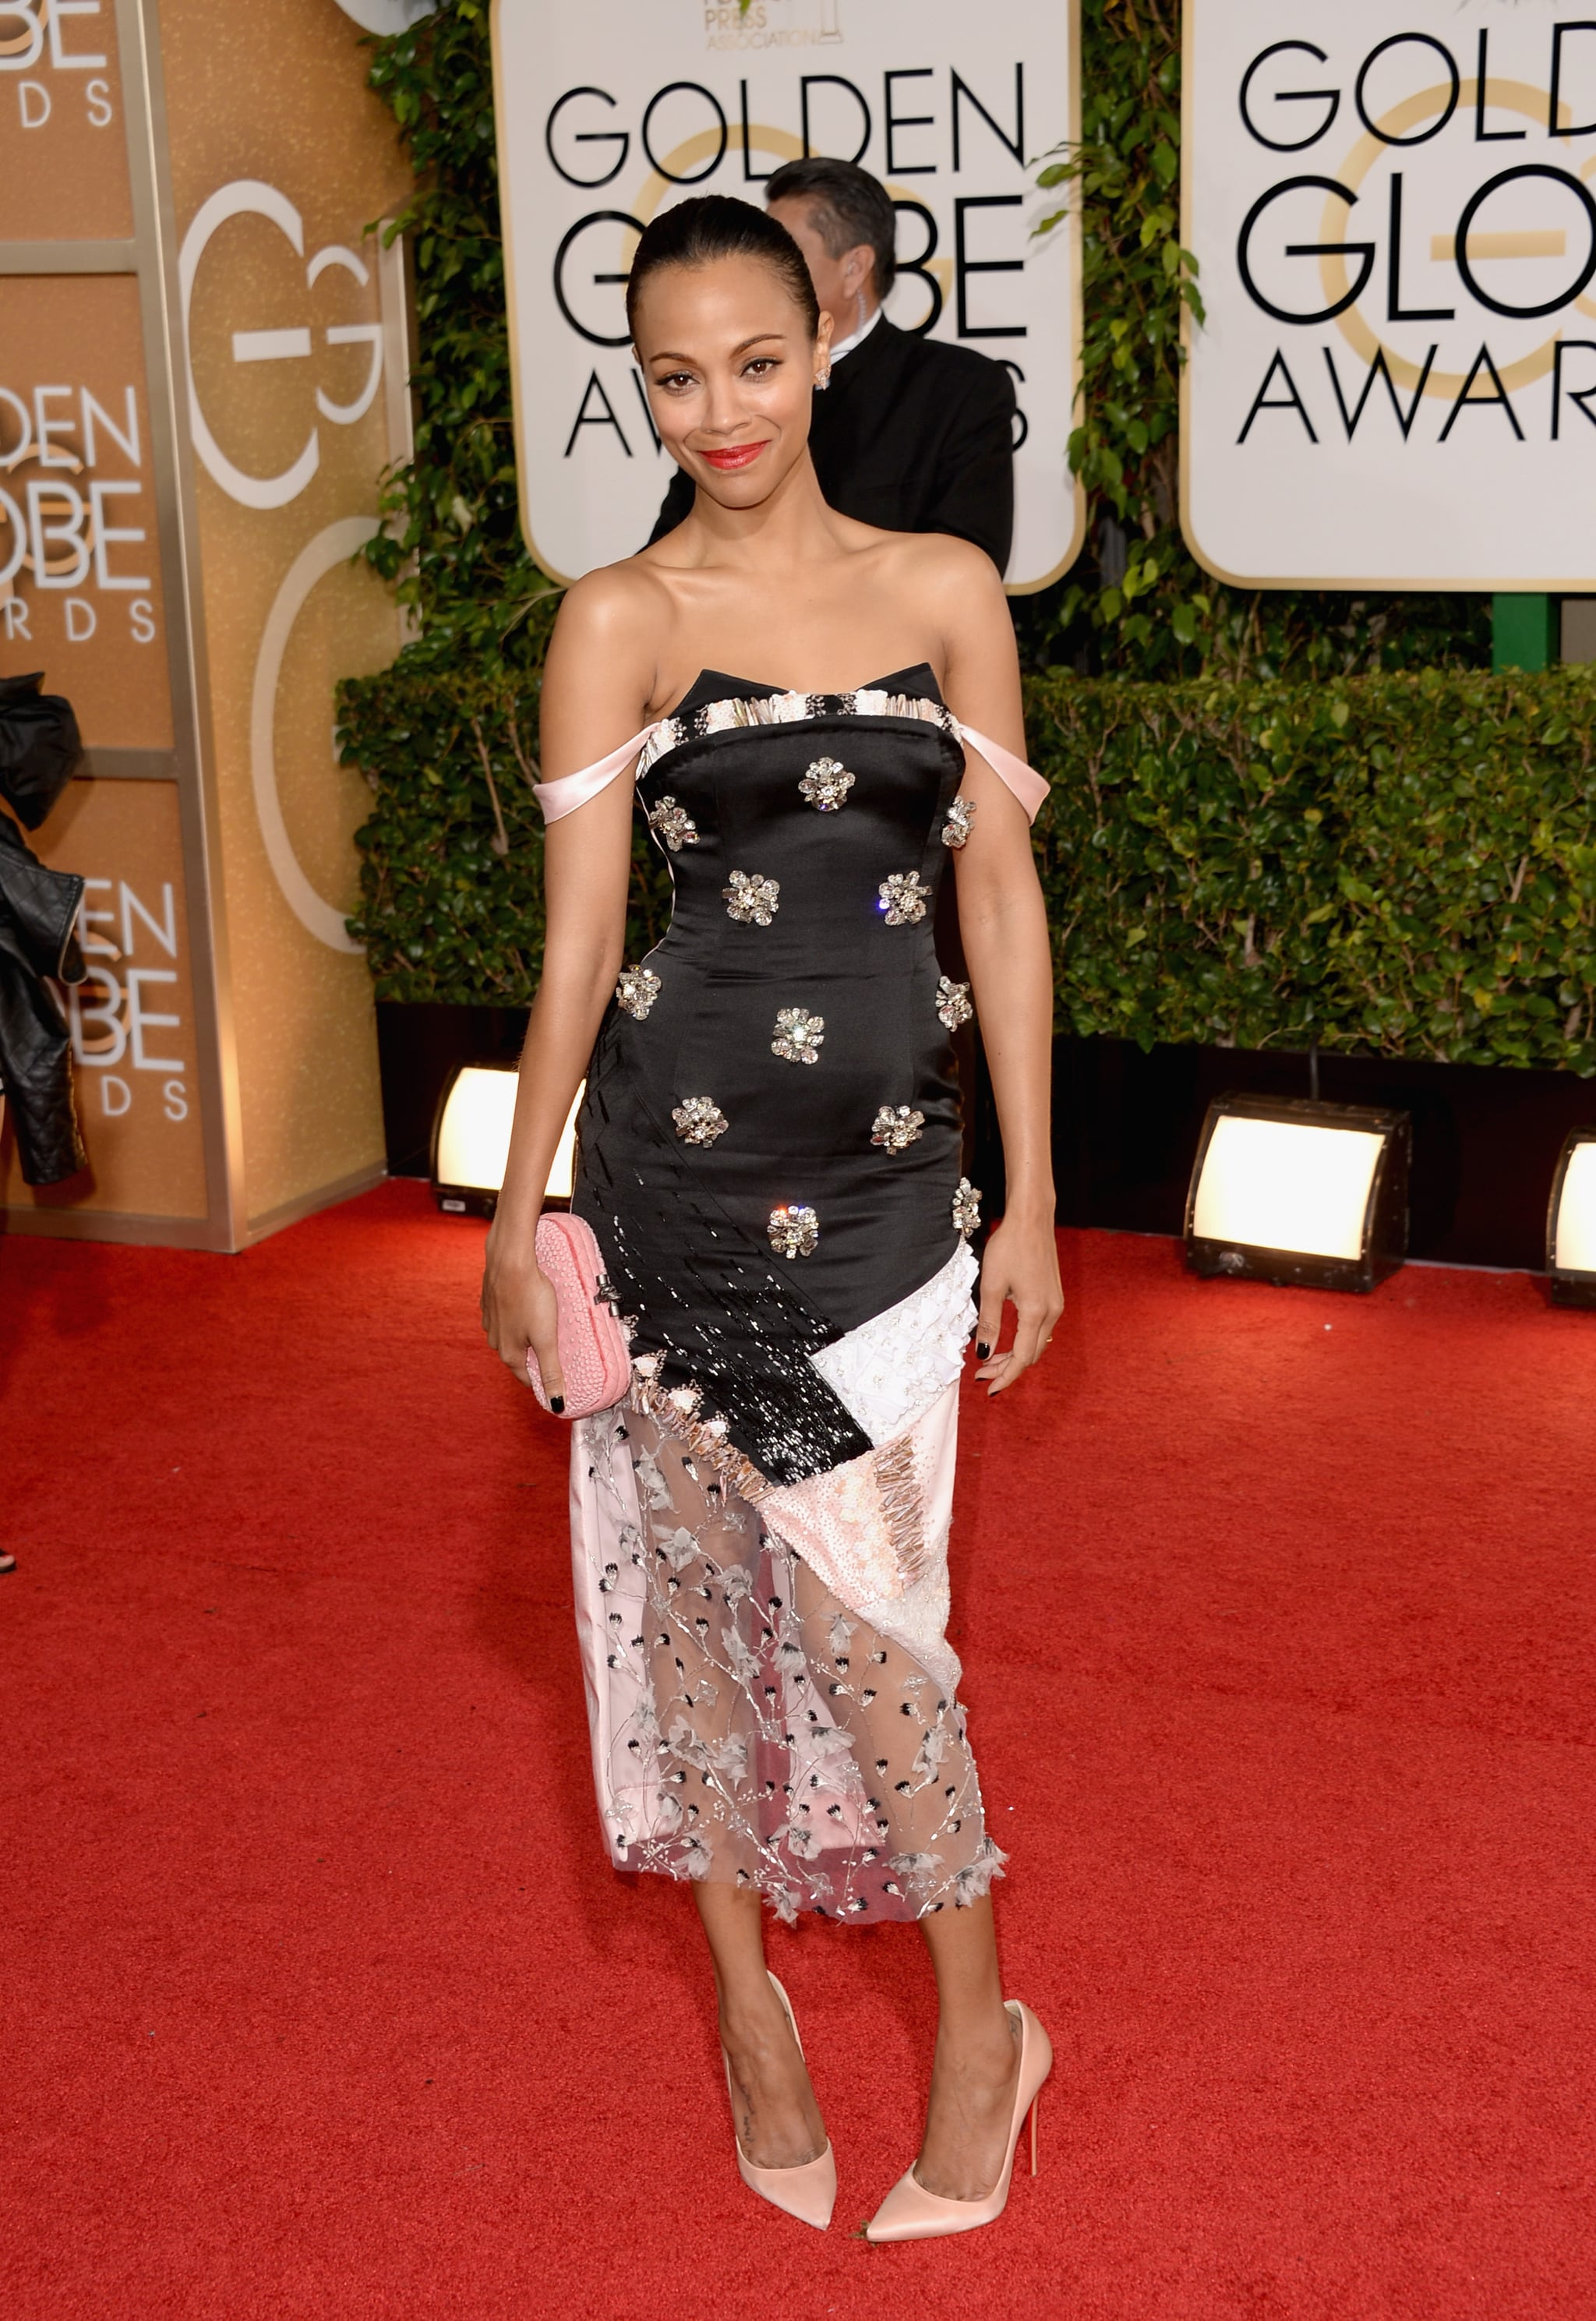 Zoe Saldana Stuns at the Golden Globes